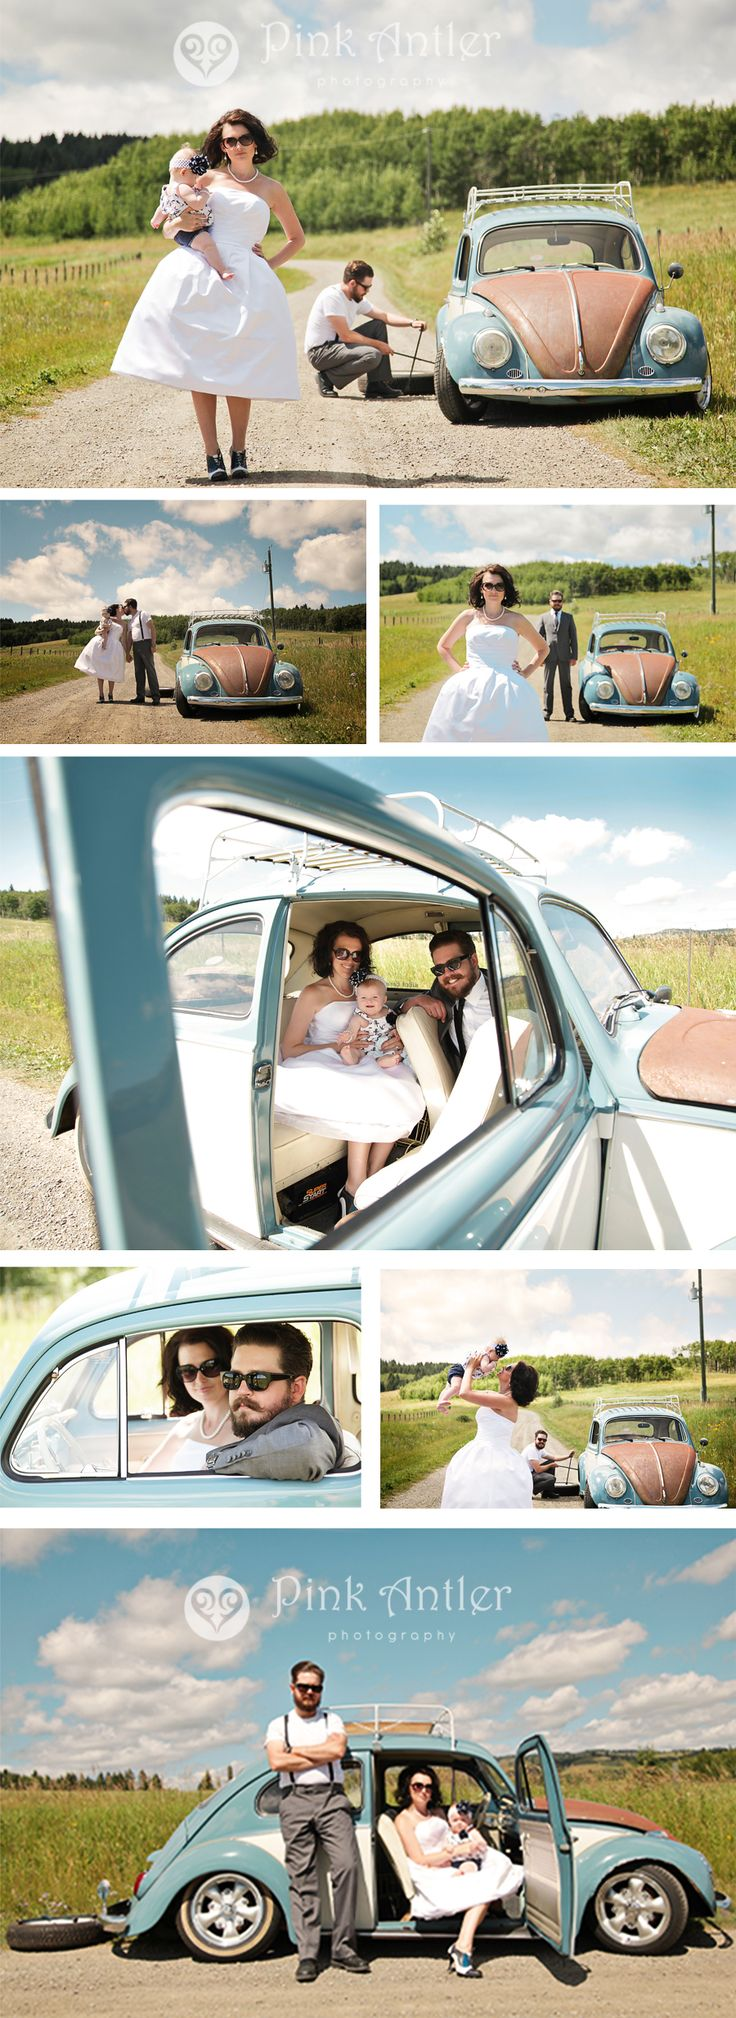 These are off the hook! Car broken down, rockabilly style wedding photo's with baby. By Pink Antler Photography.